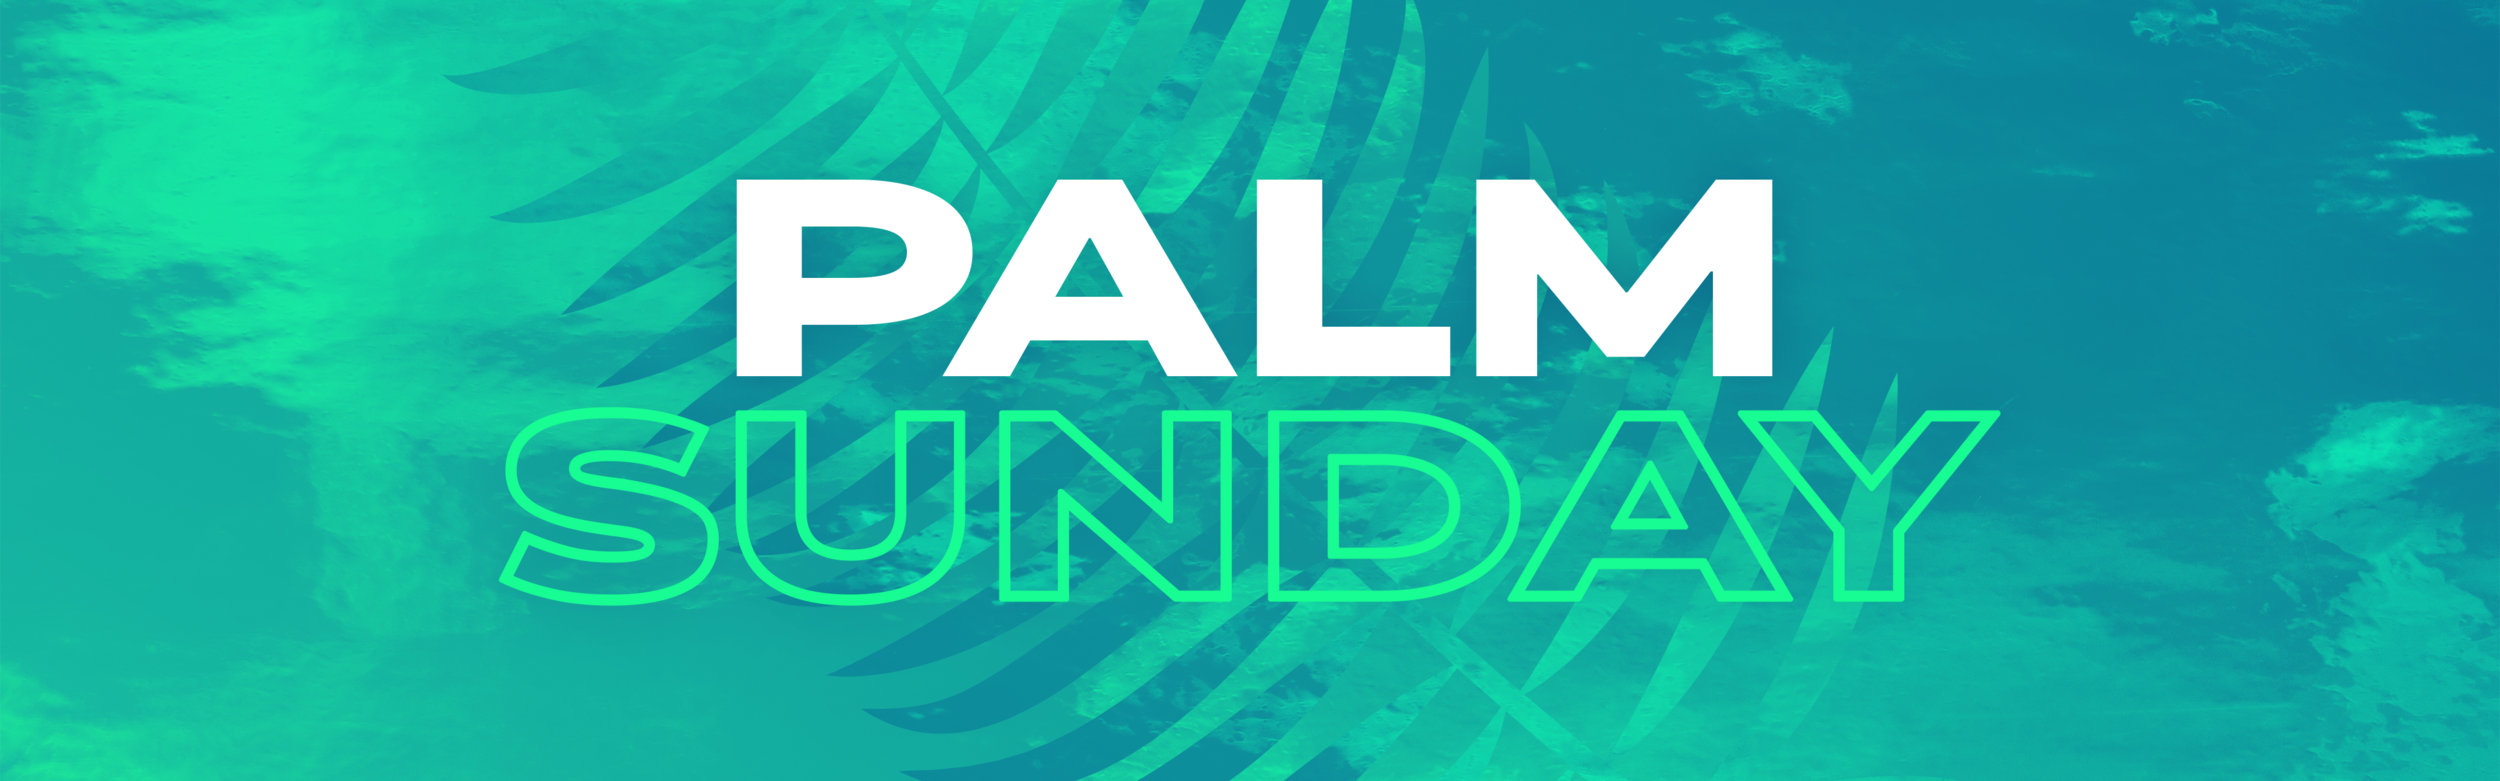 Foil Vibes Palm Sunday.png